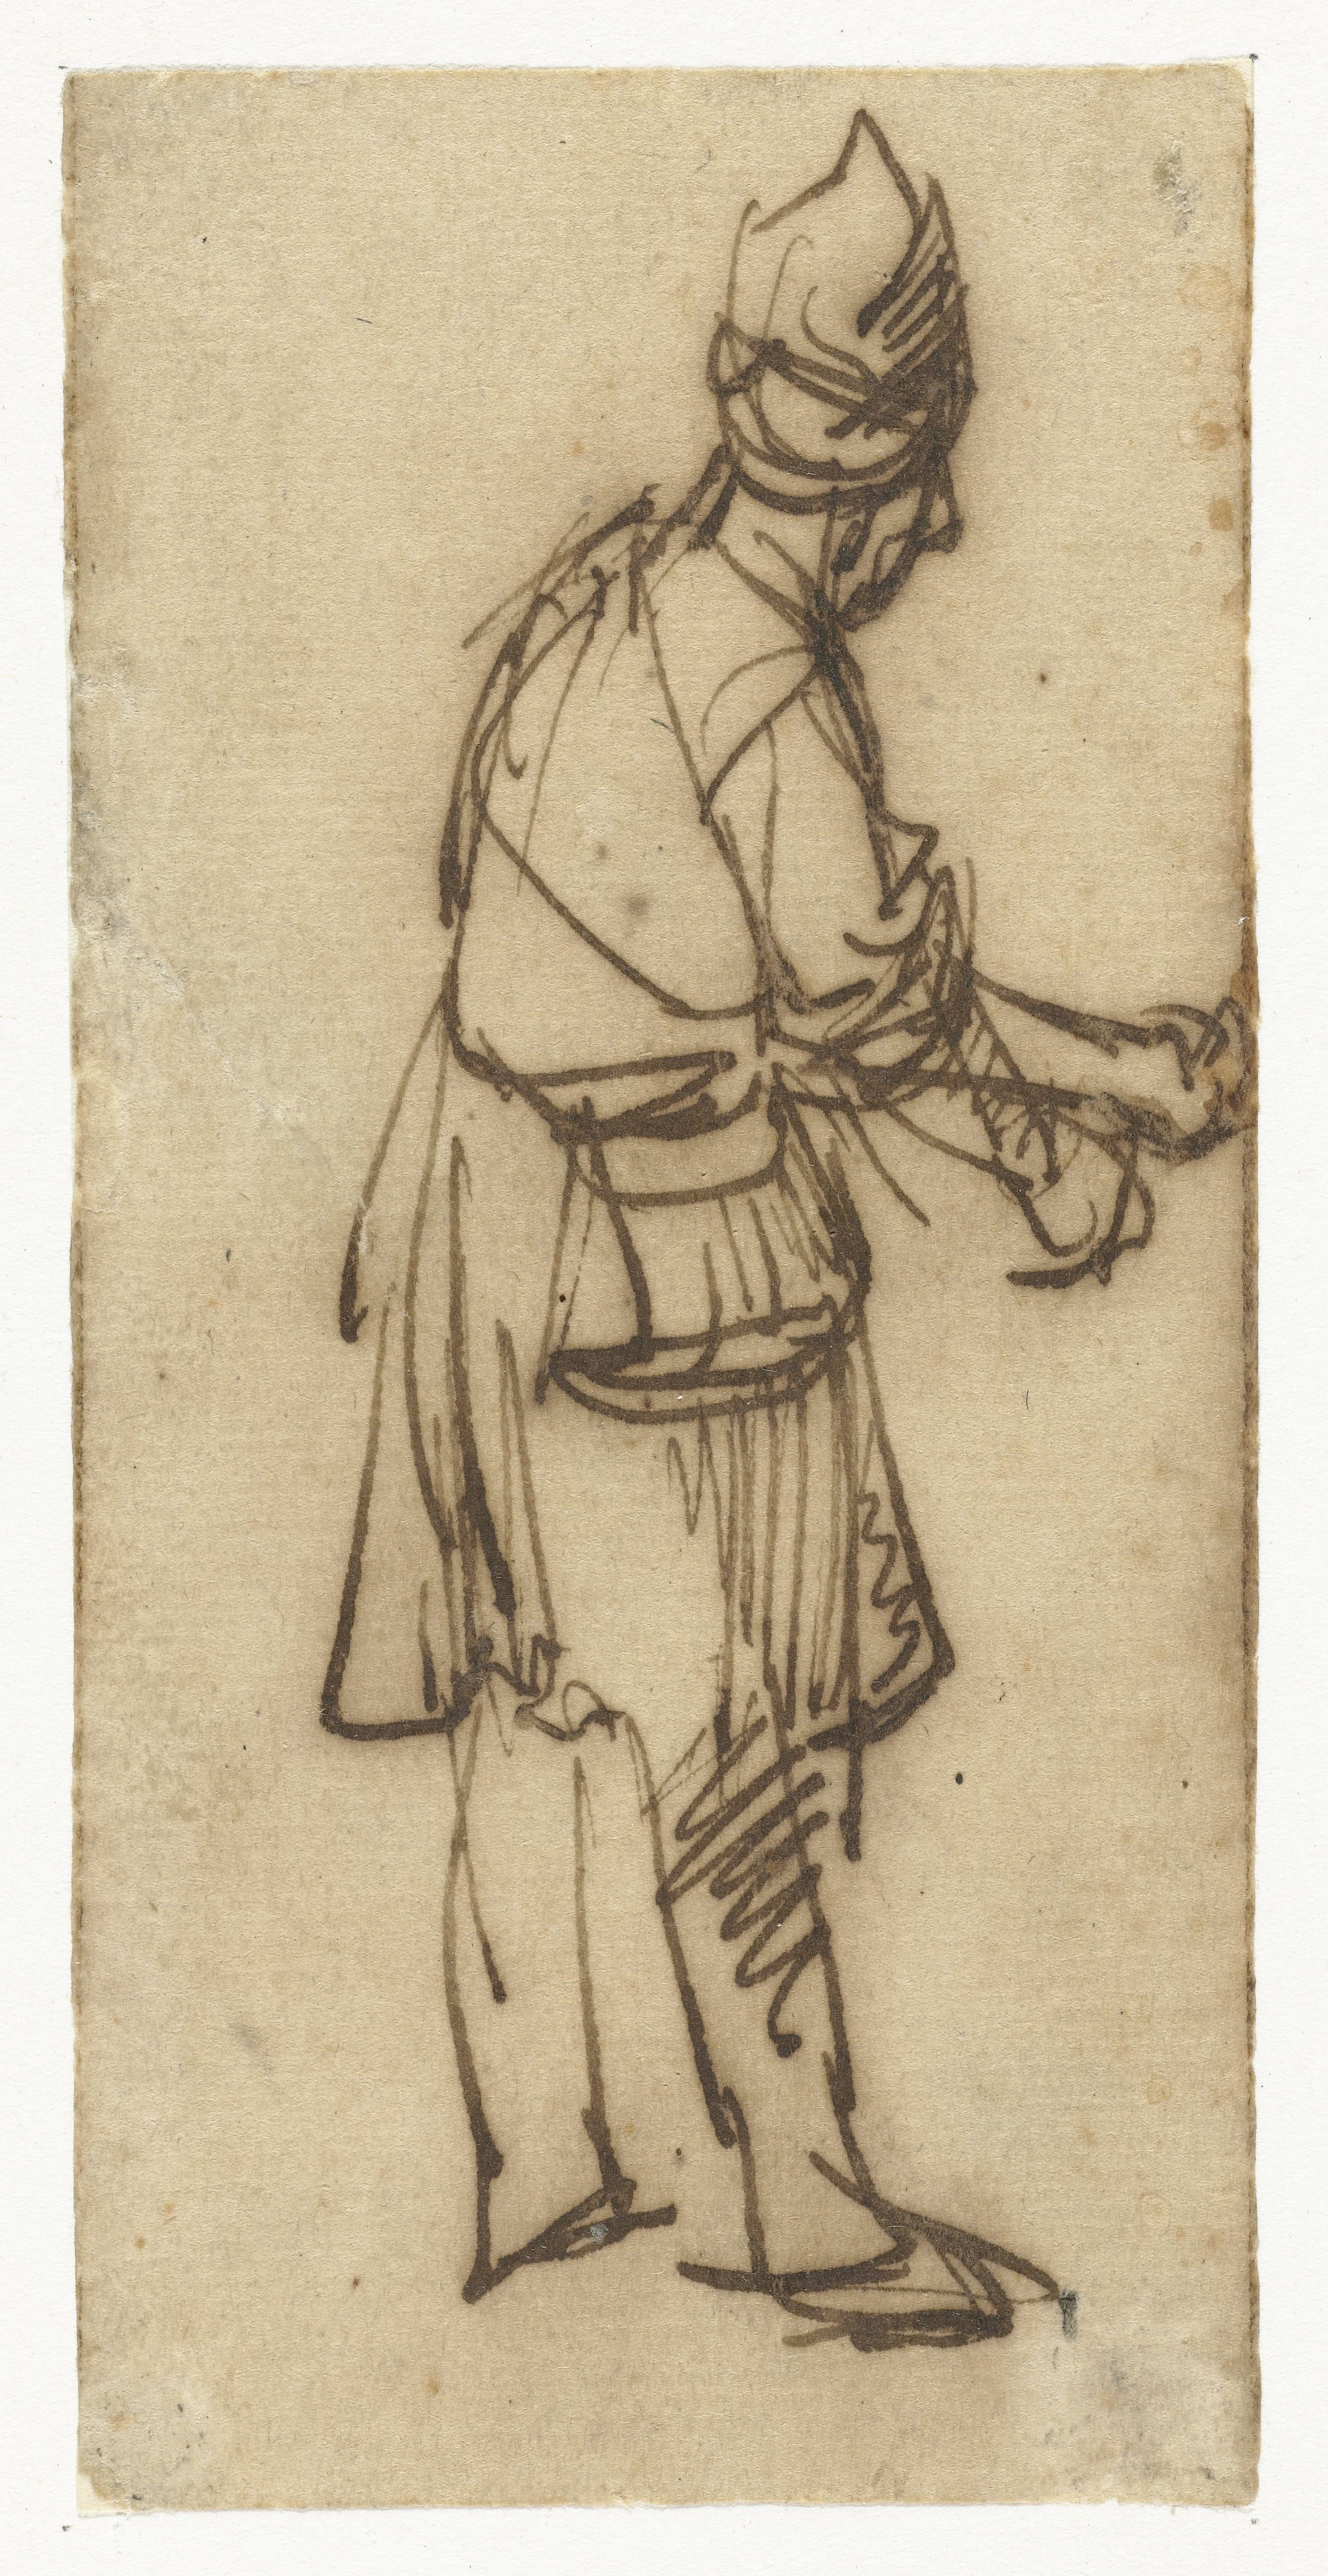 Rembrandt Harmenszoon van Rijn. Standing Man with Outstretched Arm